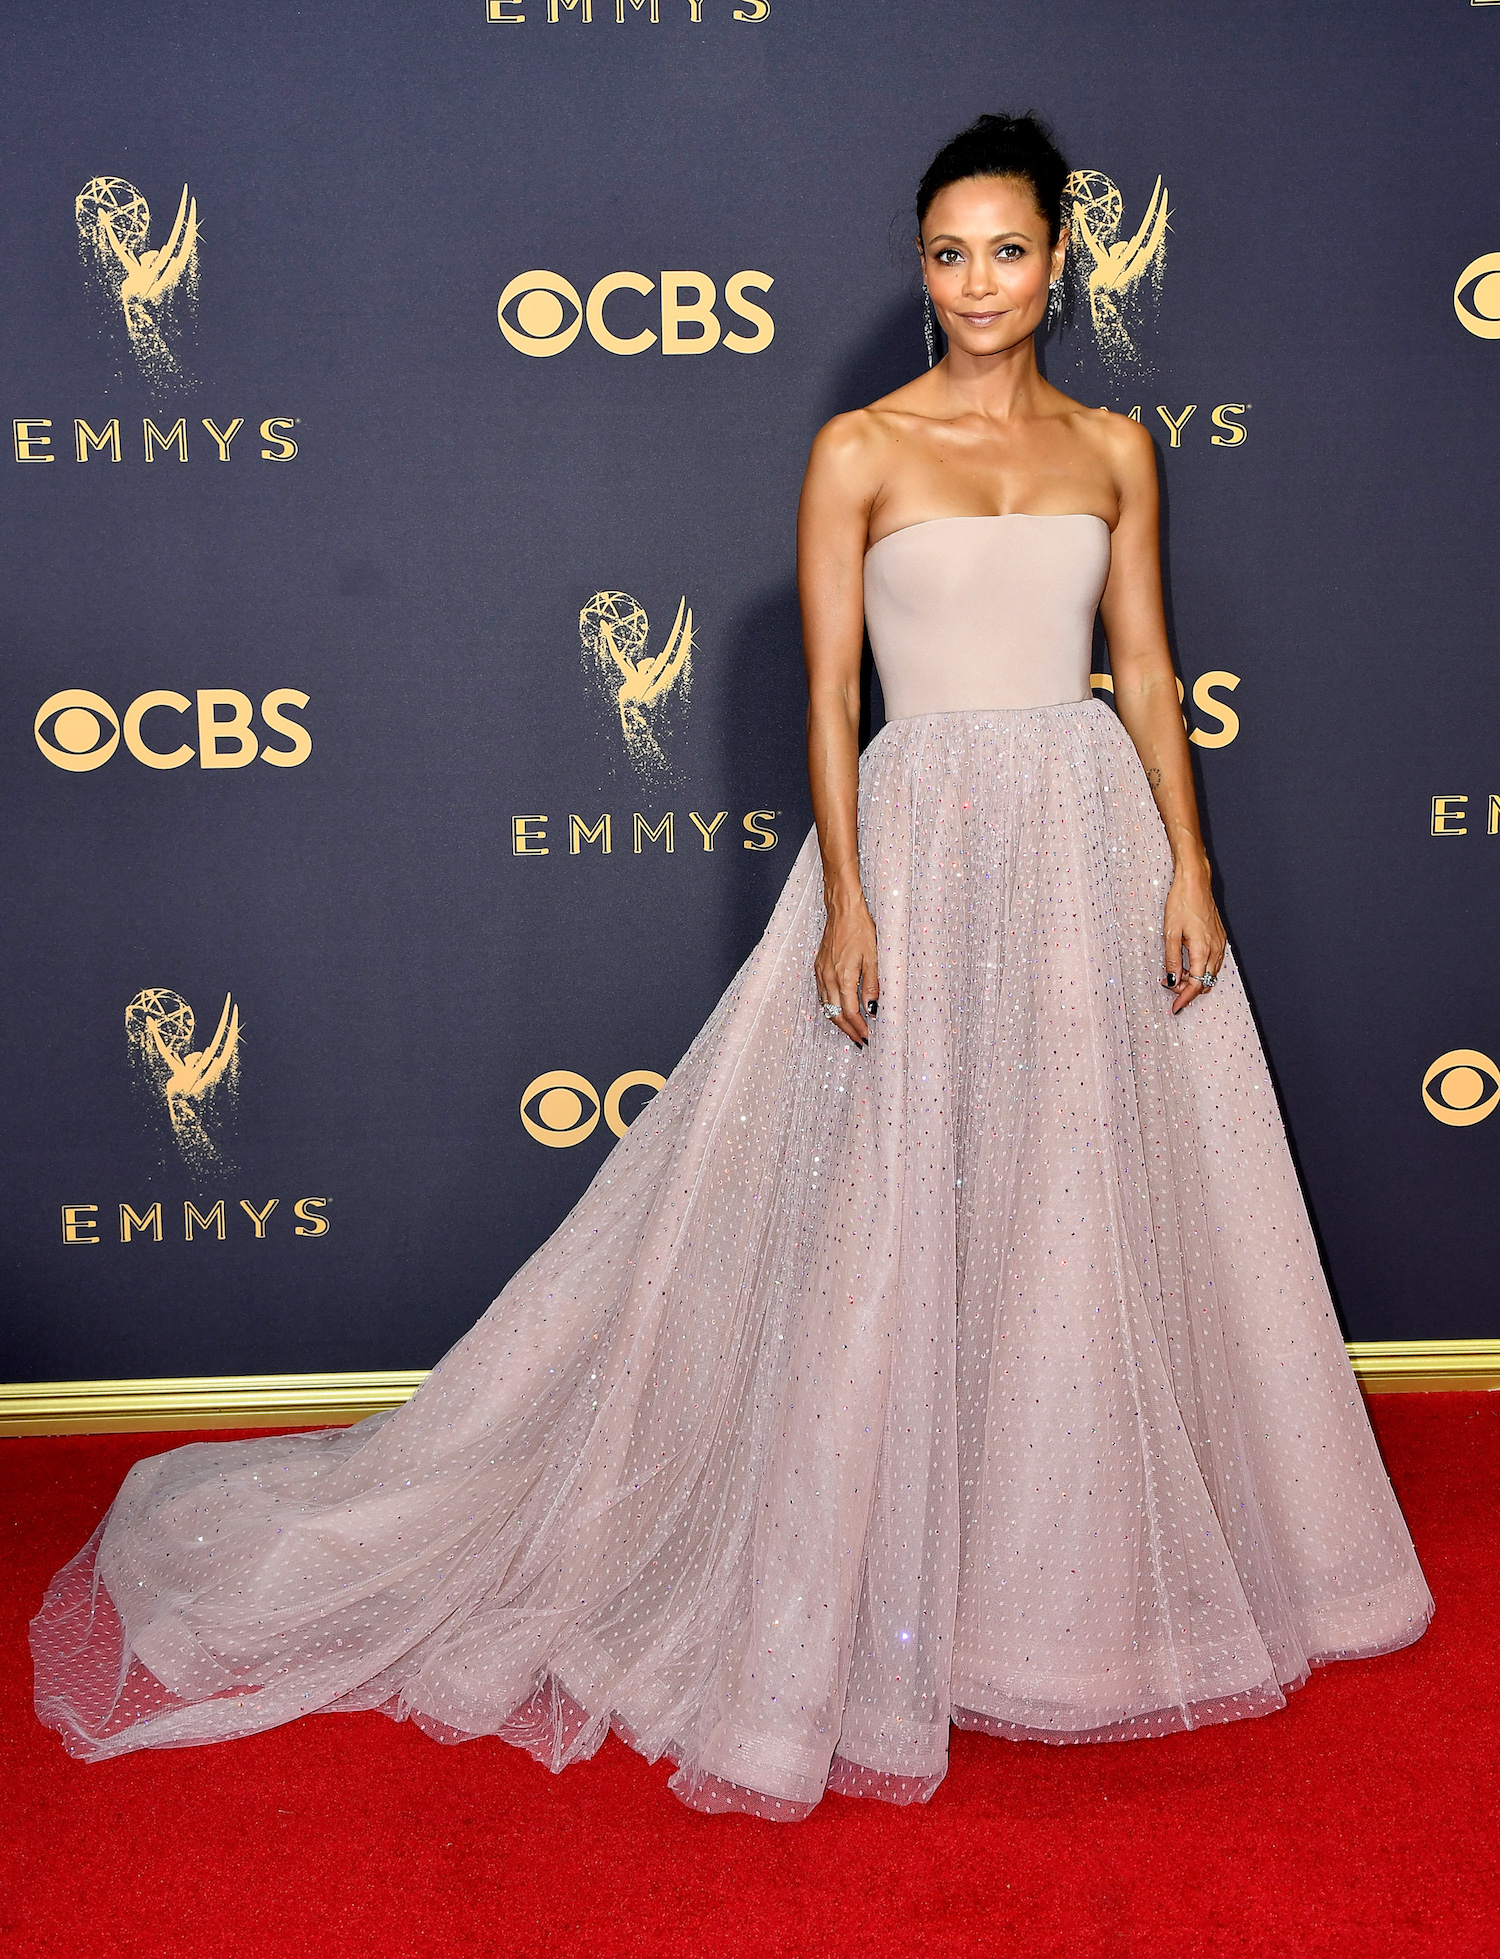 Thandie Newton Emmys Red Carpet 2017